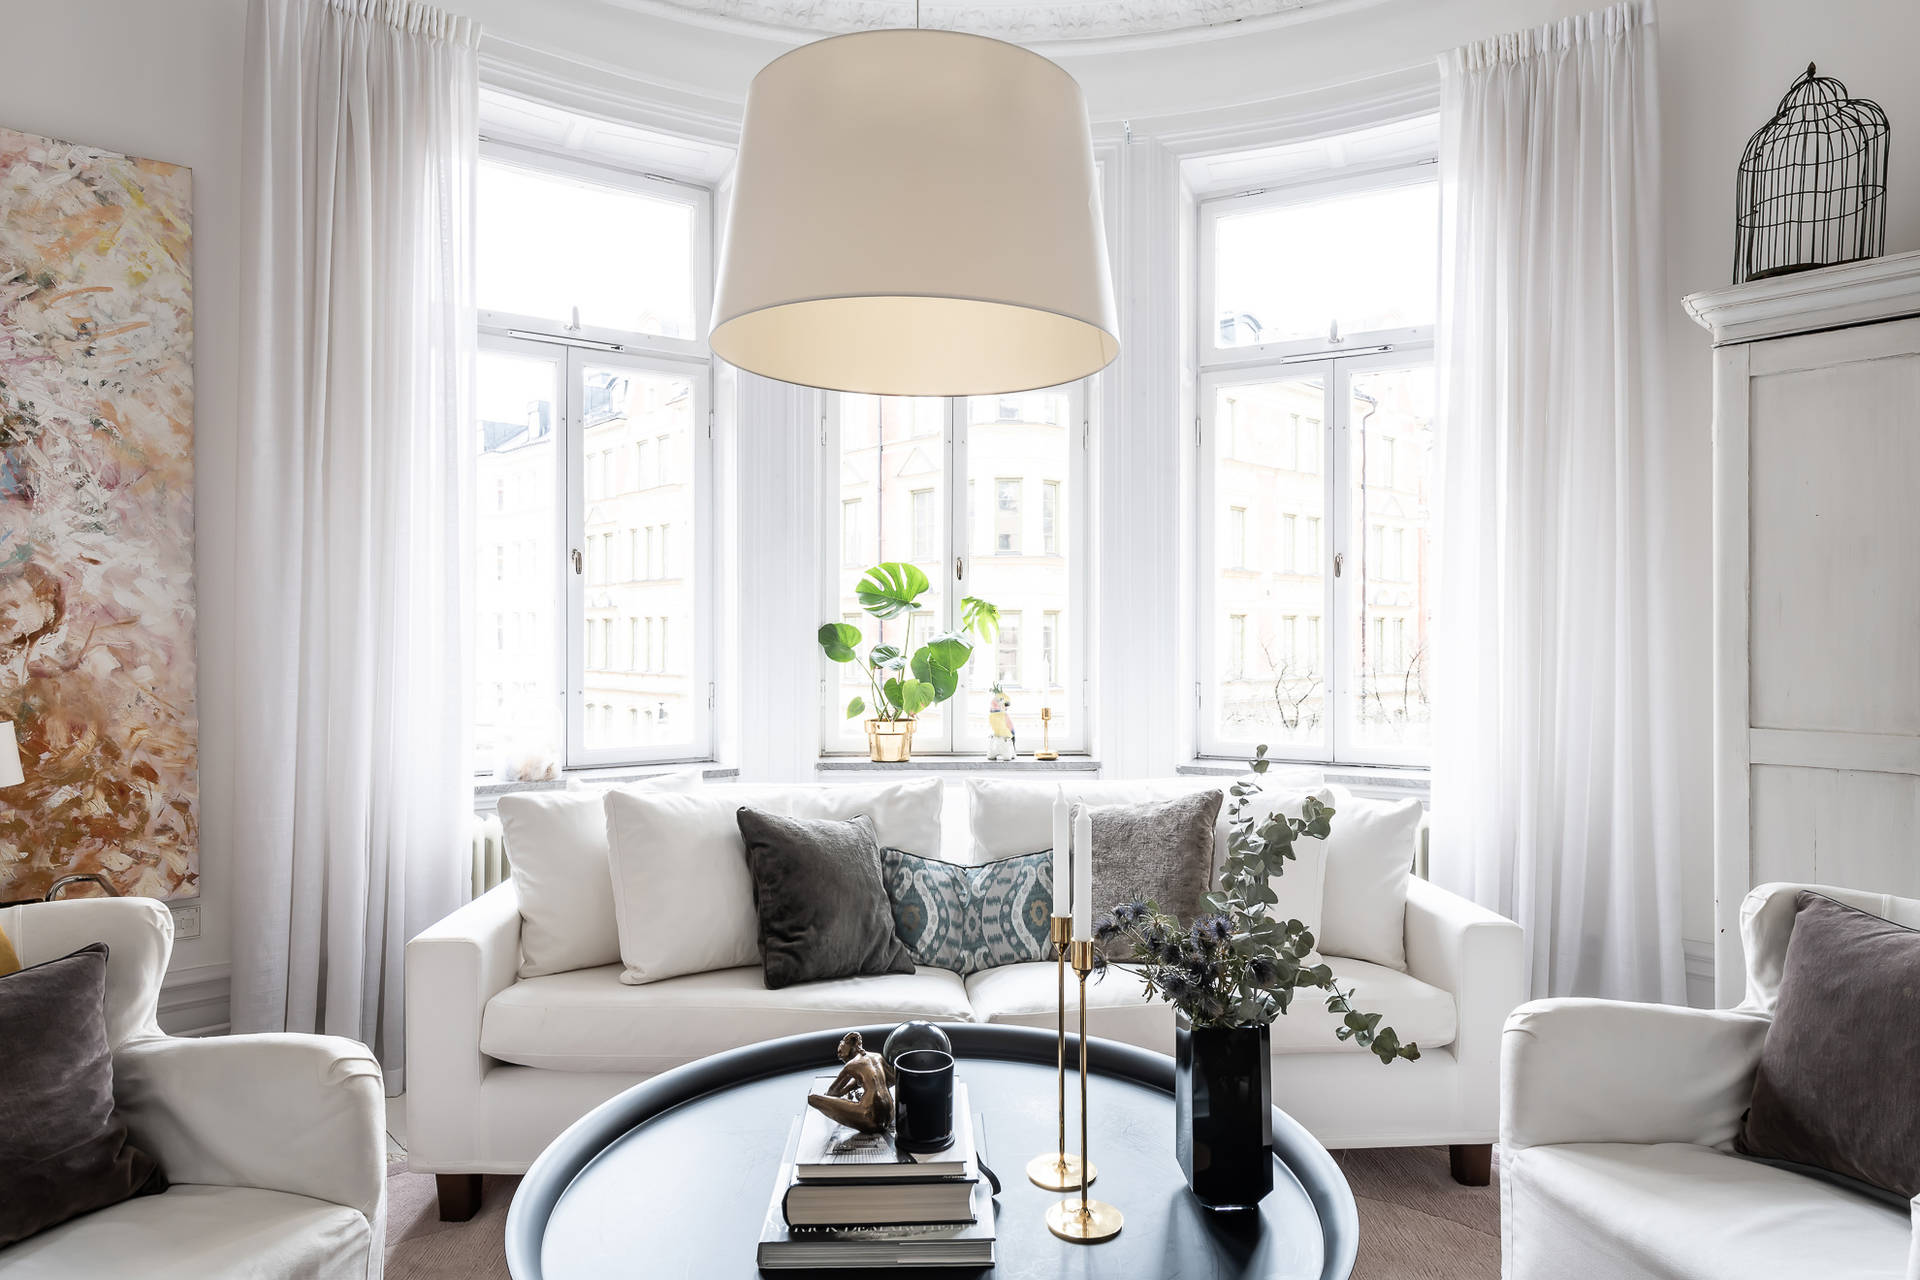 The assortment is carefully selected with a focus on quality and Scandinavian, timeless design.